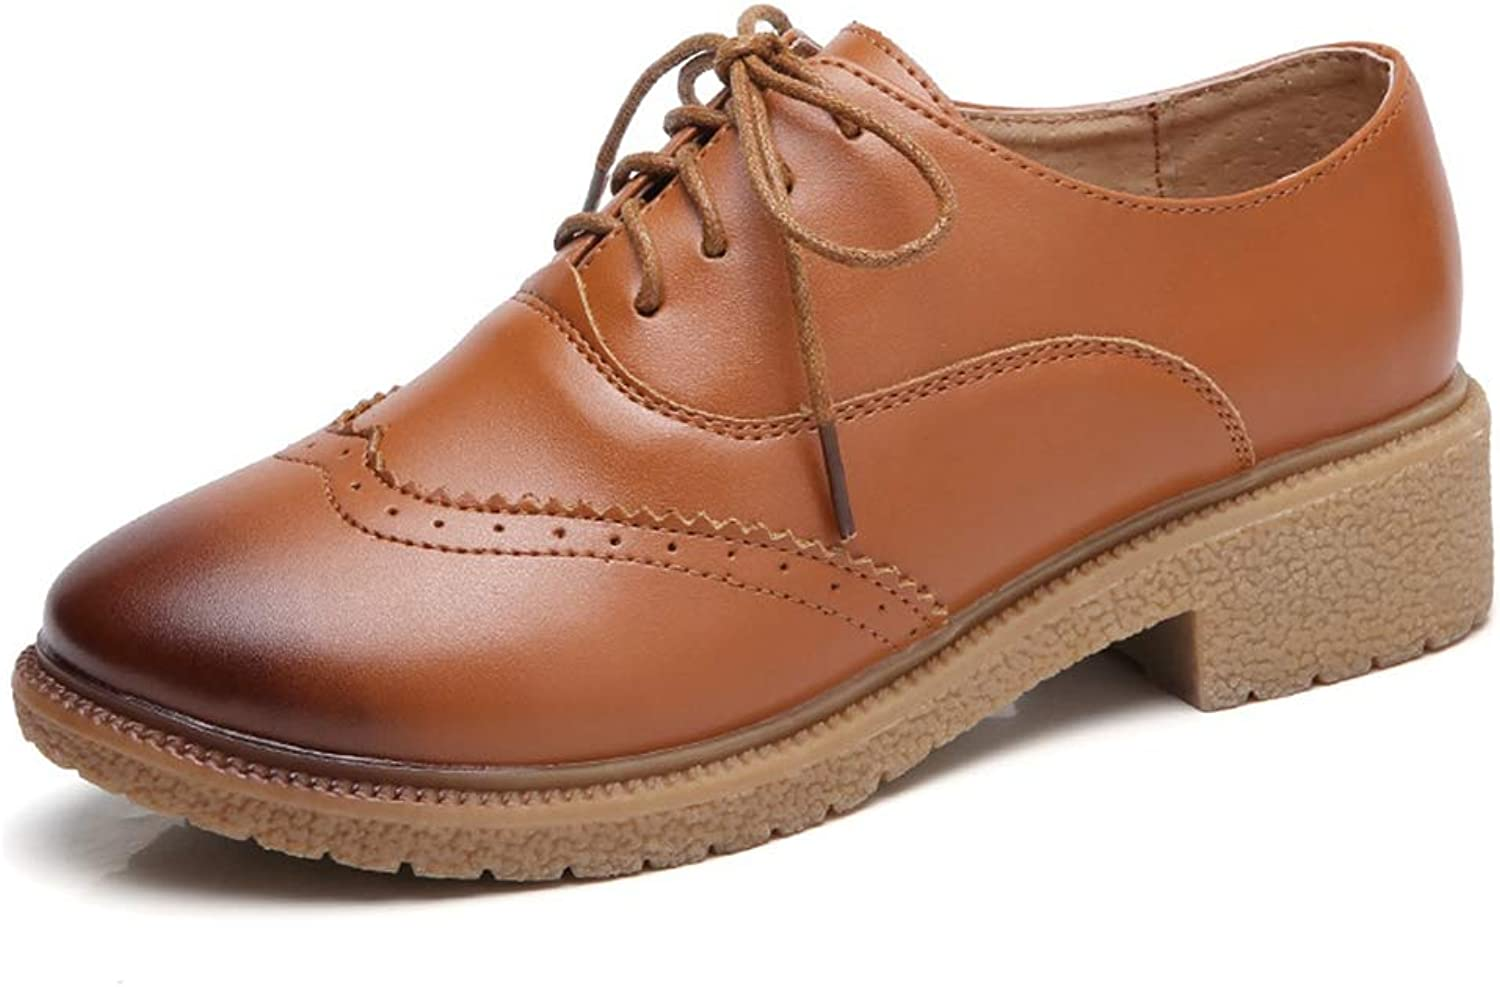 CYBLING Women's Lace-up Wingtip Leather Oxfords Flats Vintage Brogues Casual shoes